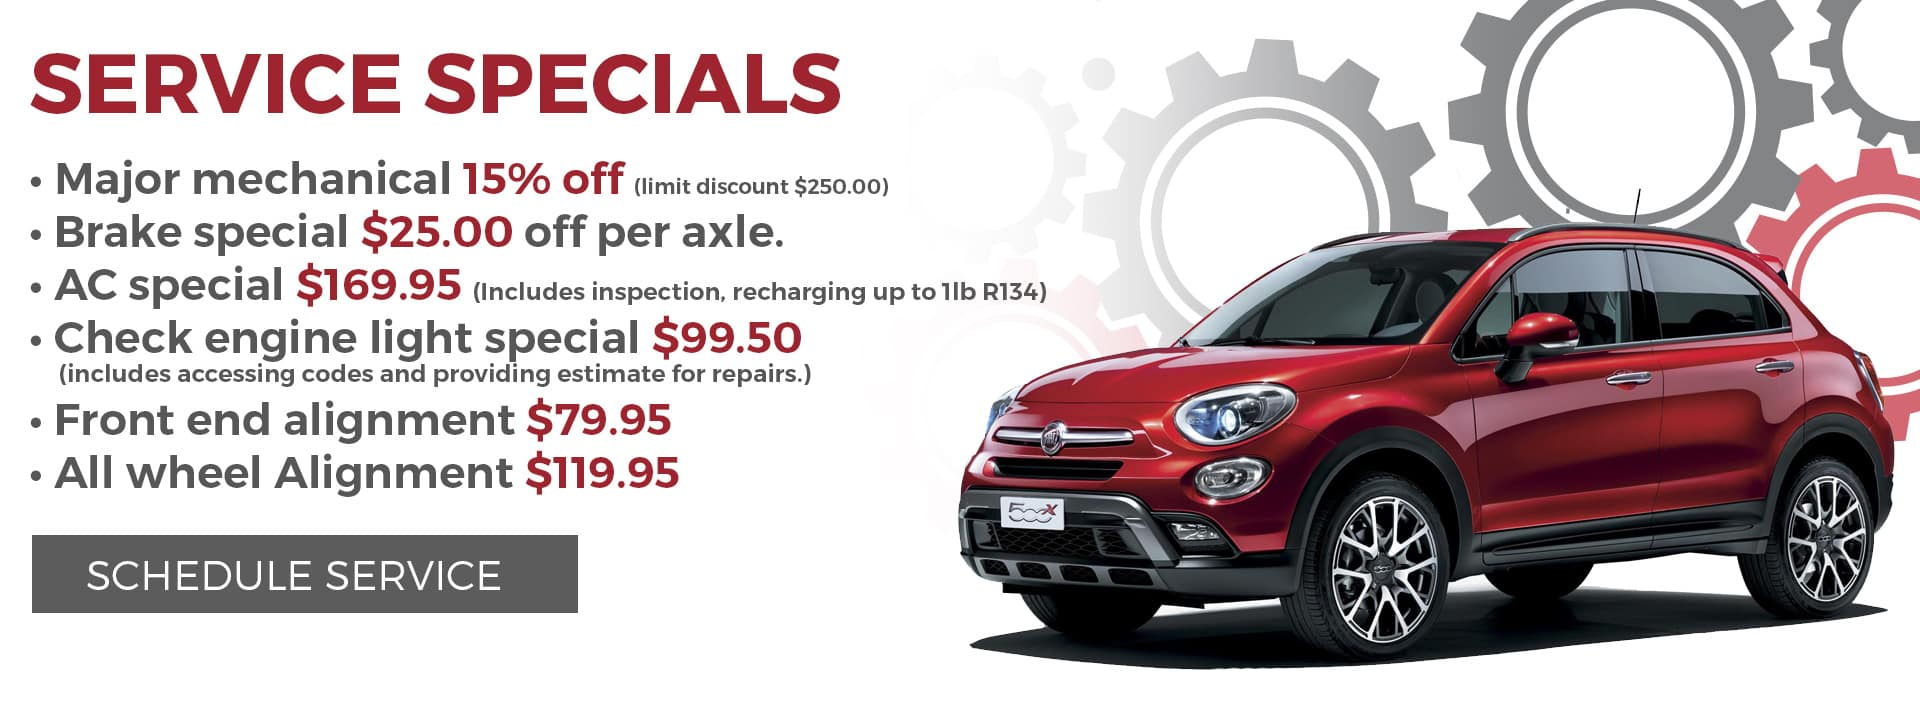 McKevitt FIAT of Berkeley | FIAT Dealer in Berkeley, CA